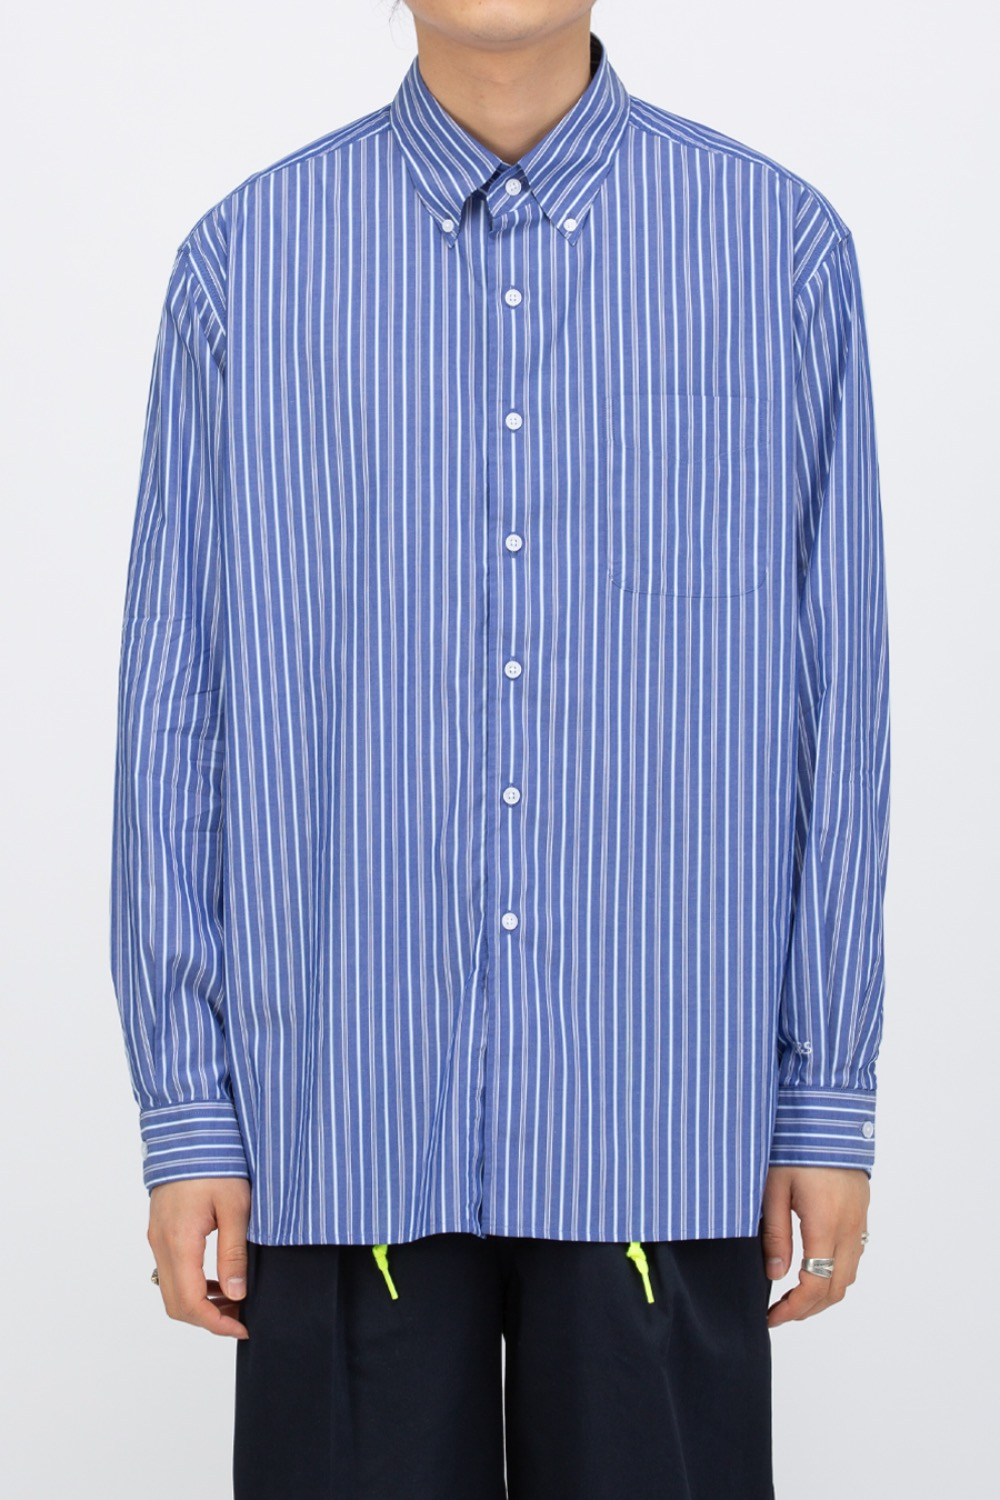 OVERCAST X SCULP_BIG SHIRT BLUE STRIPE